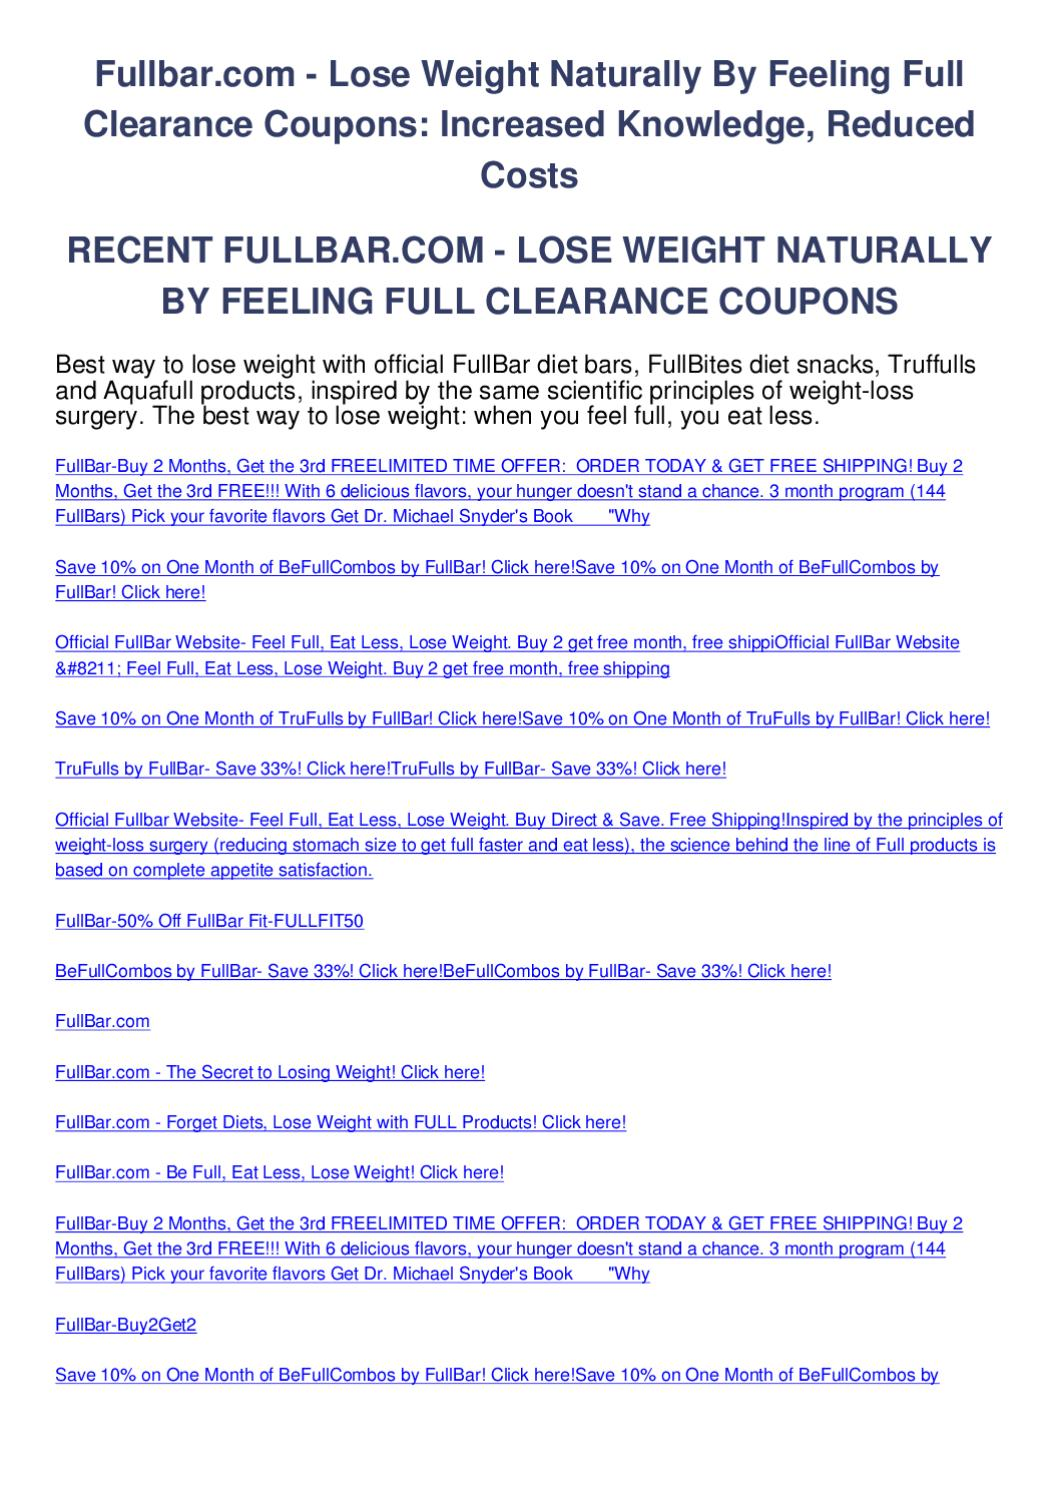 How to lose weight naturally in 3 months